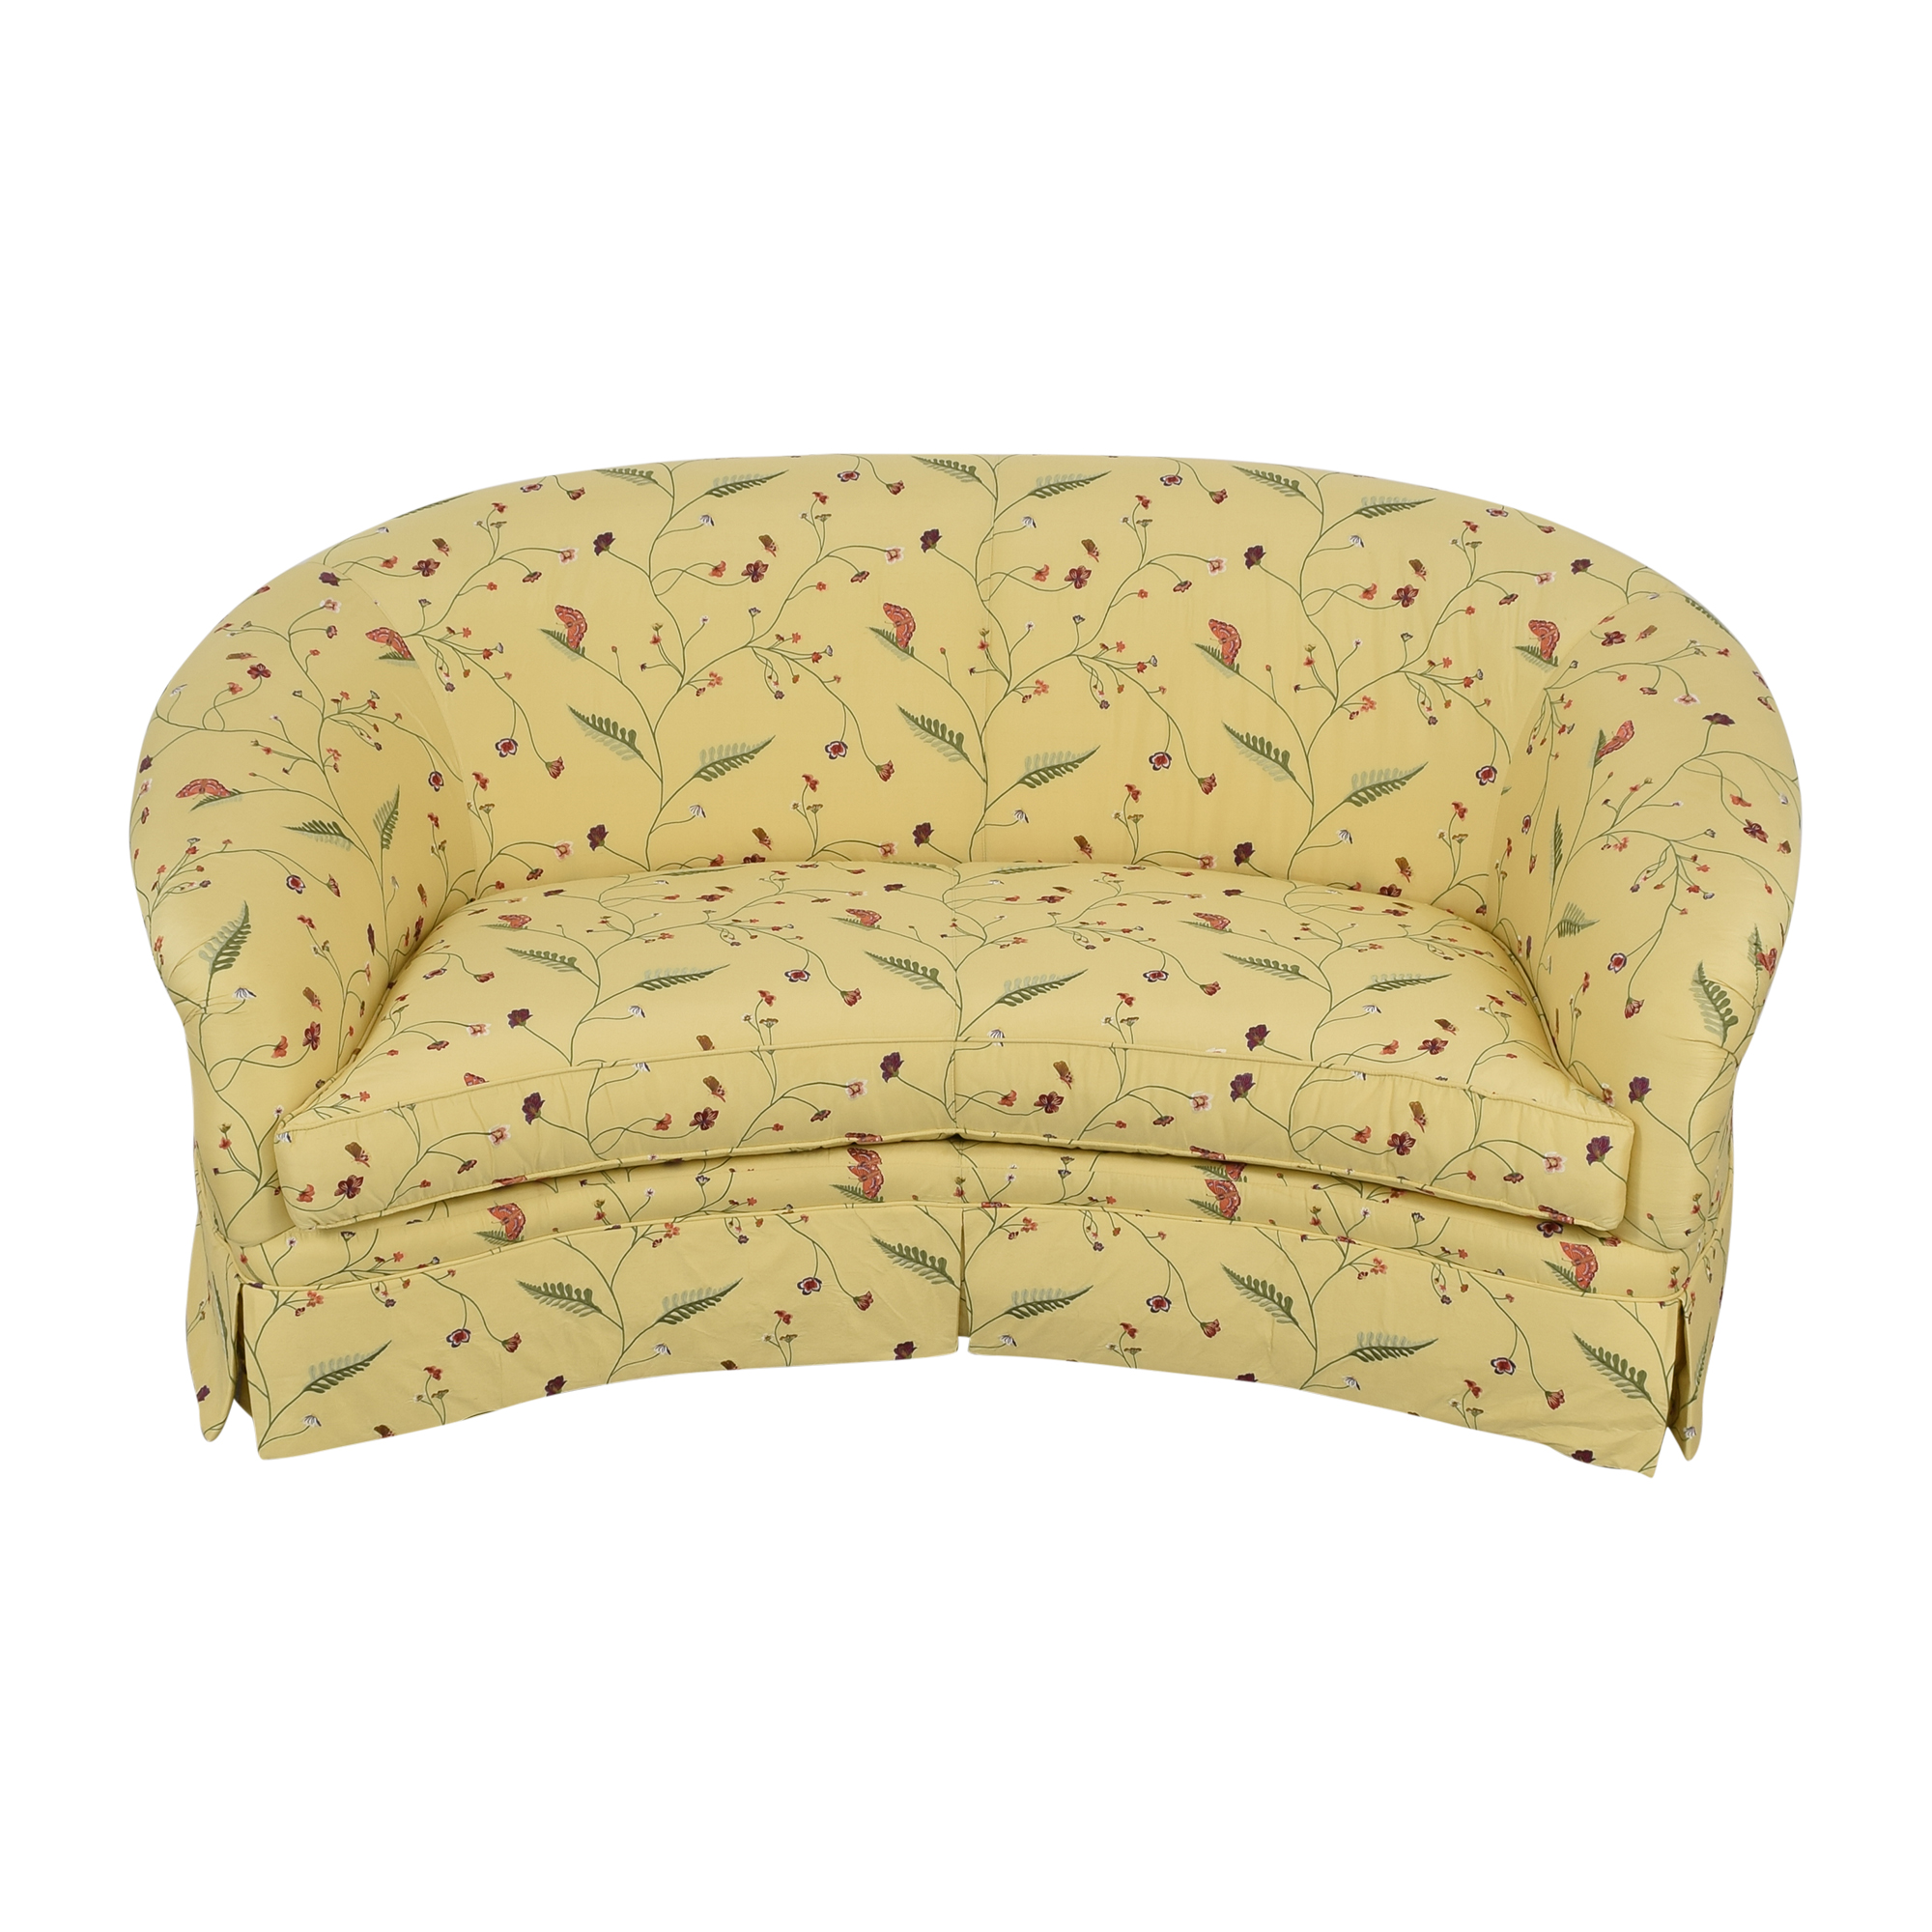 Drexel Heritage Drexel Heritage Chinoiserie Curved Sofa discount